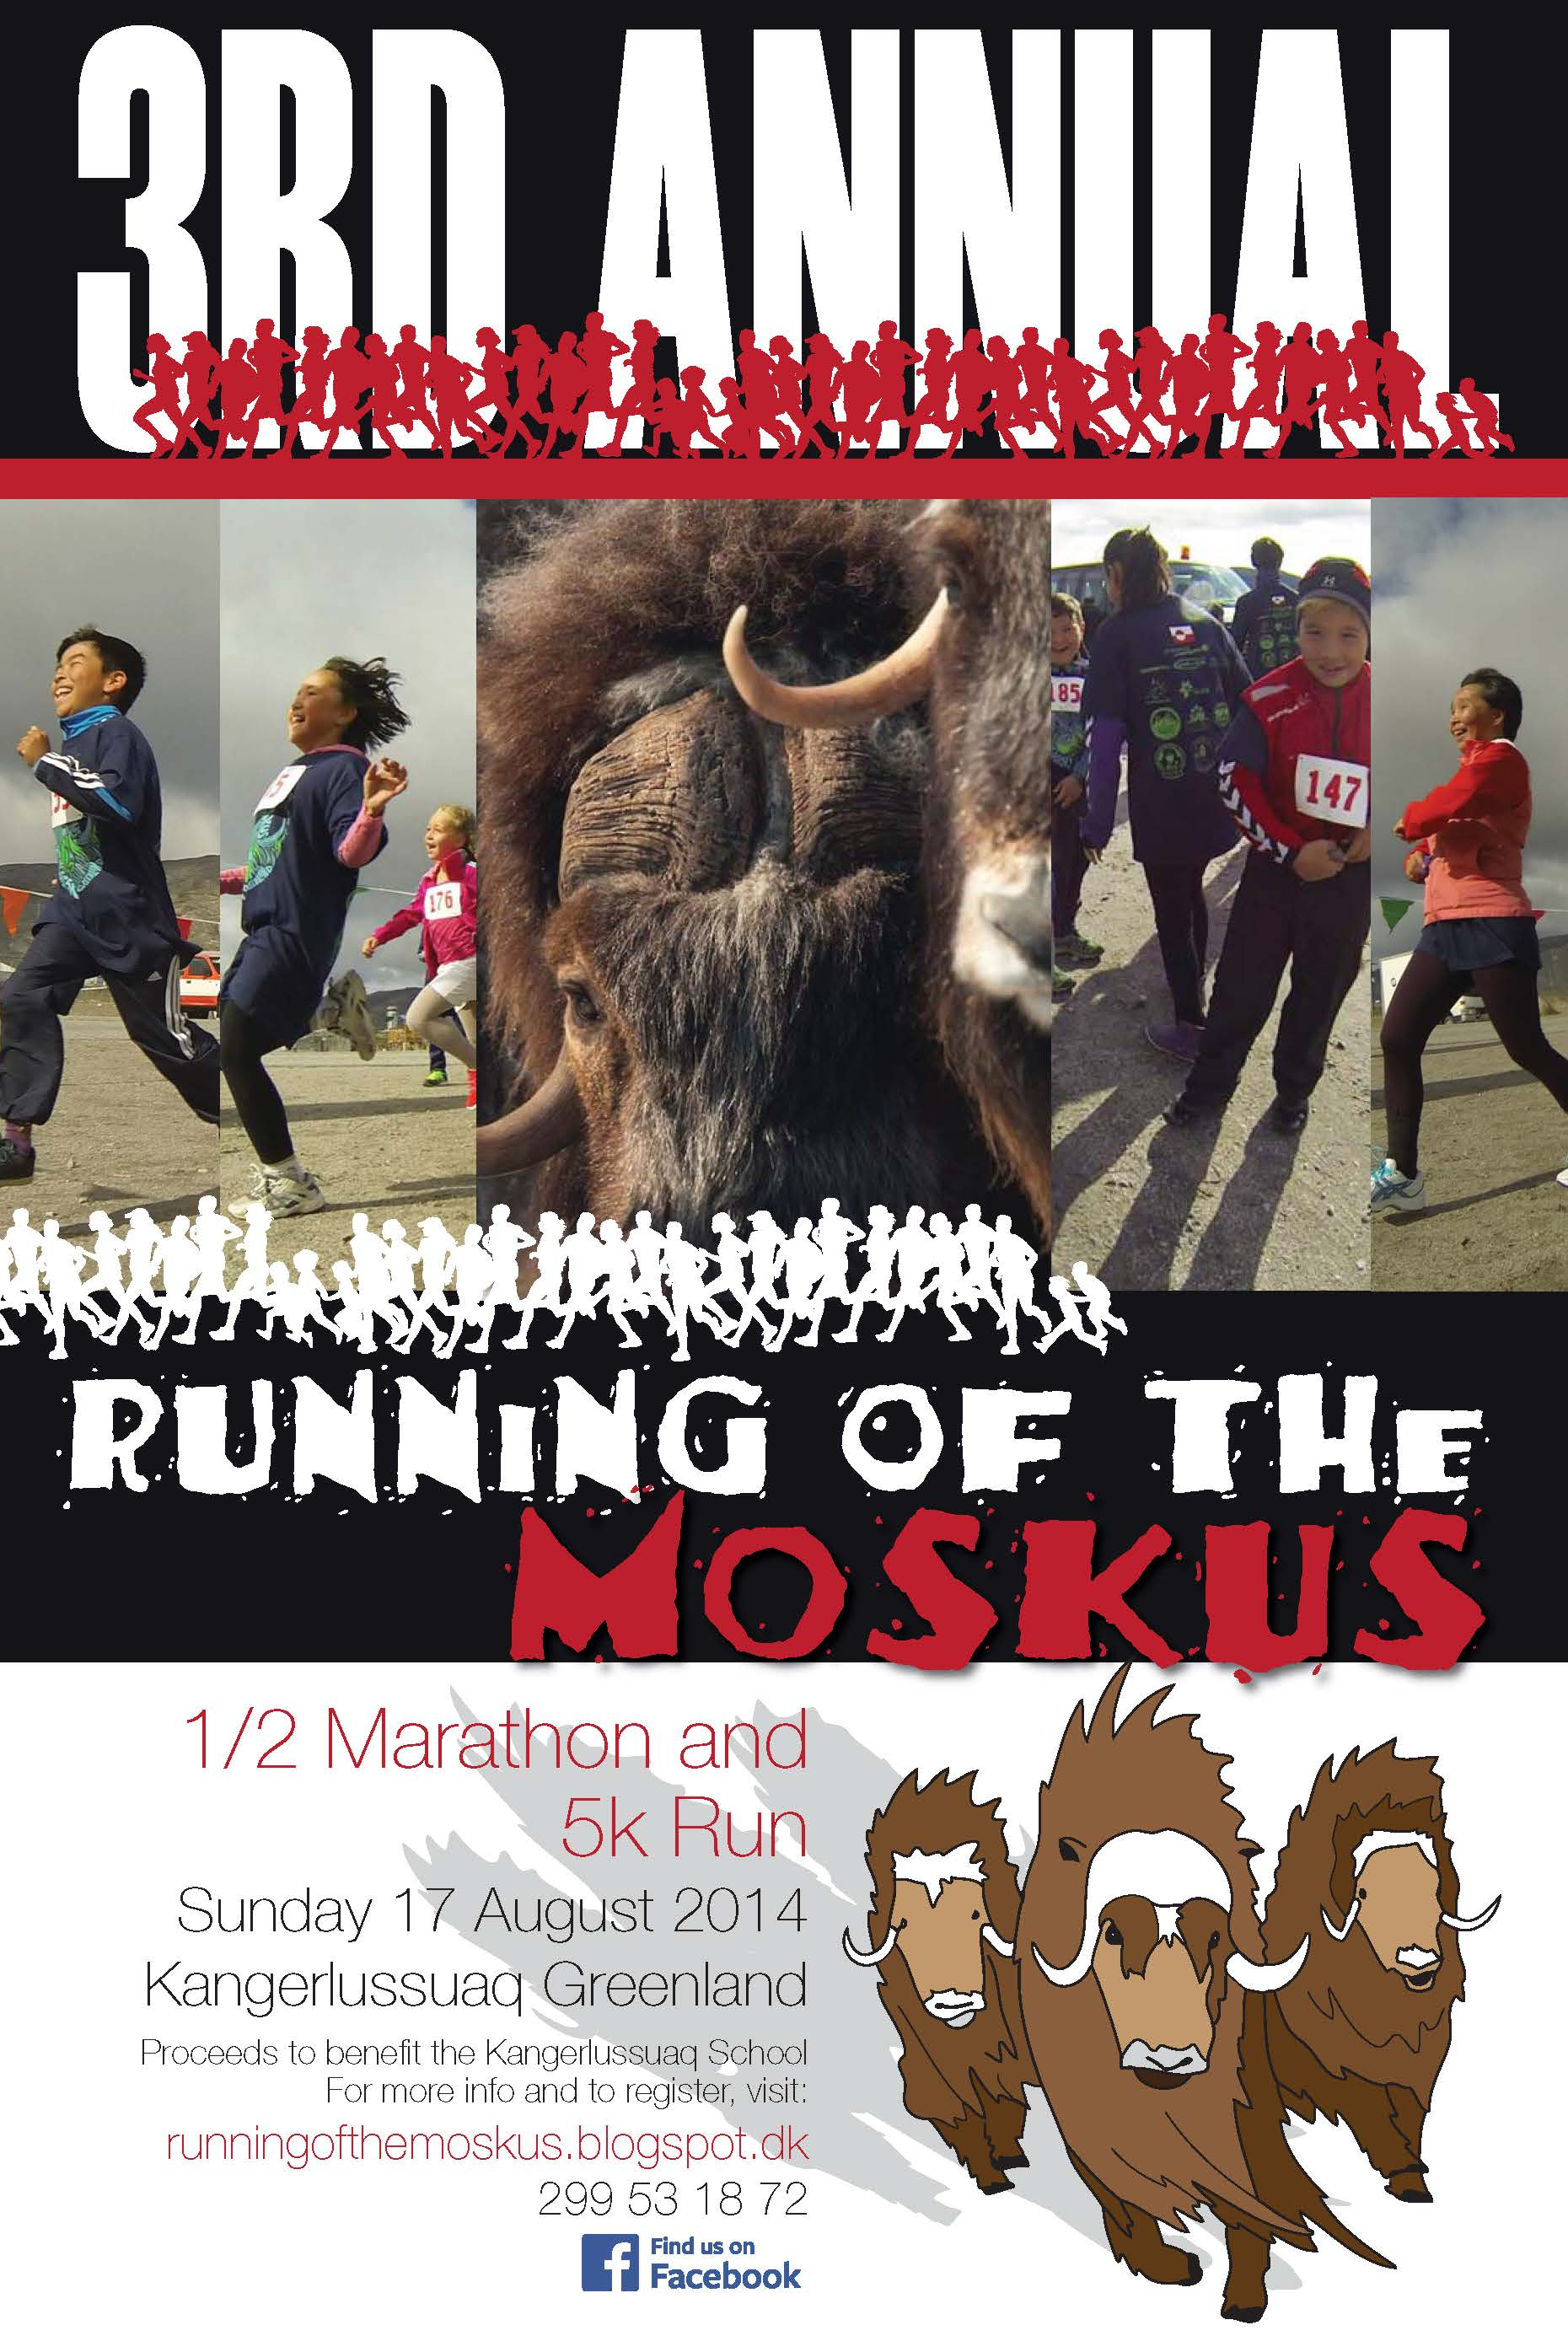 The 2014 Running of the Moskus poster features original art by Mimi Fujino.